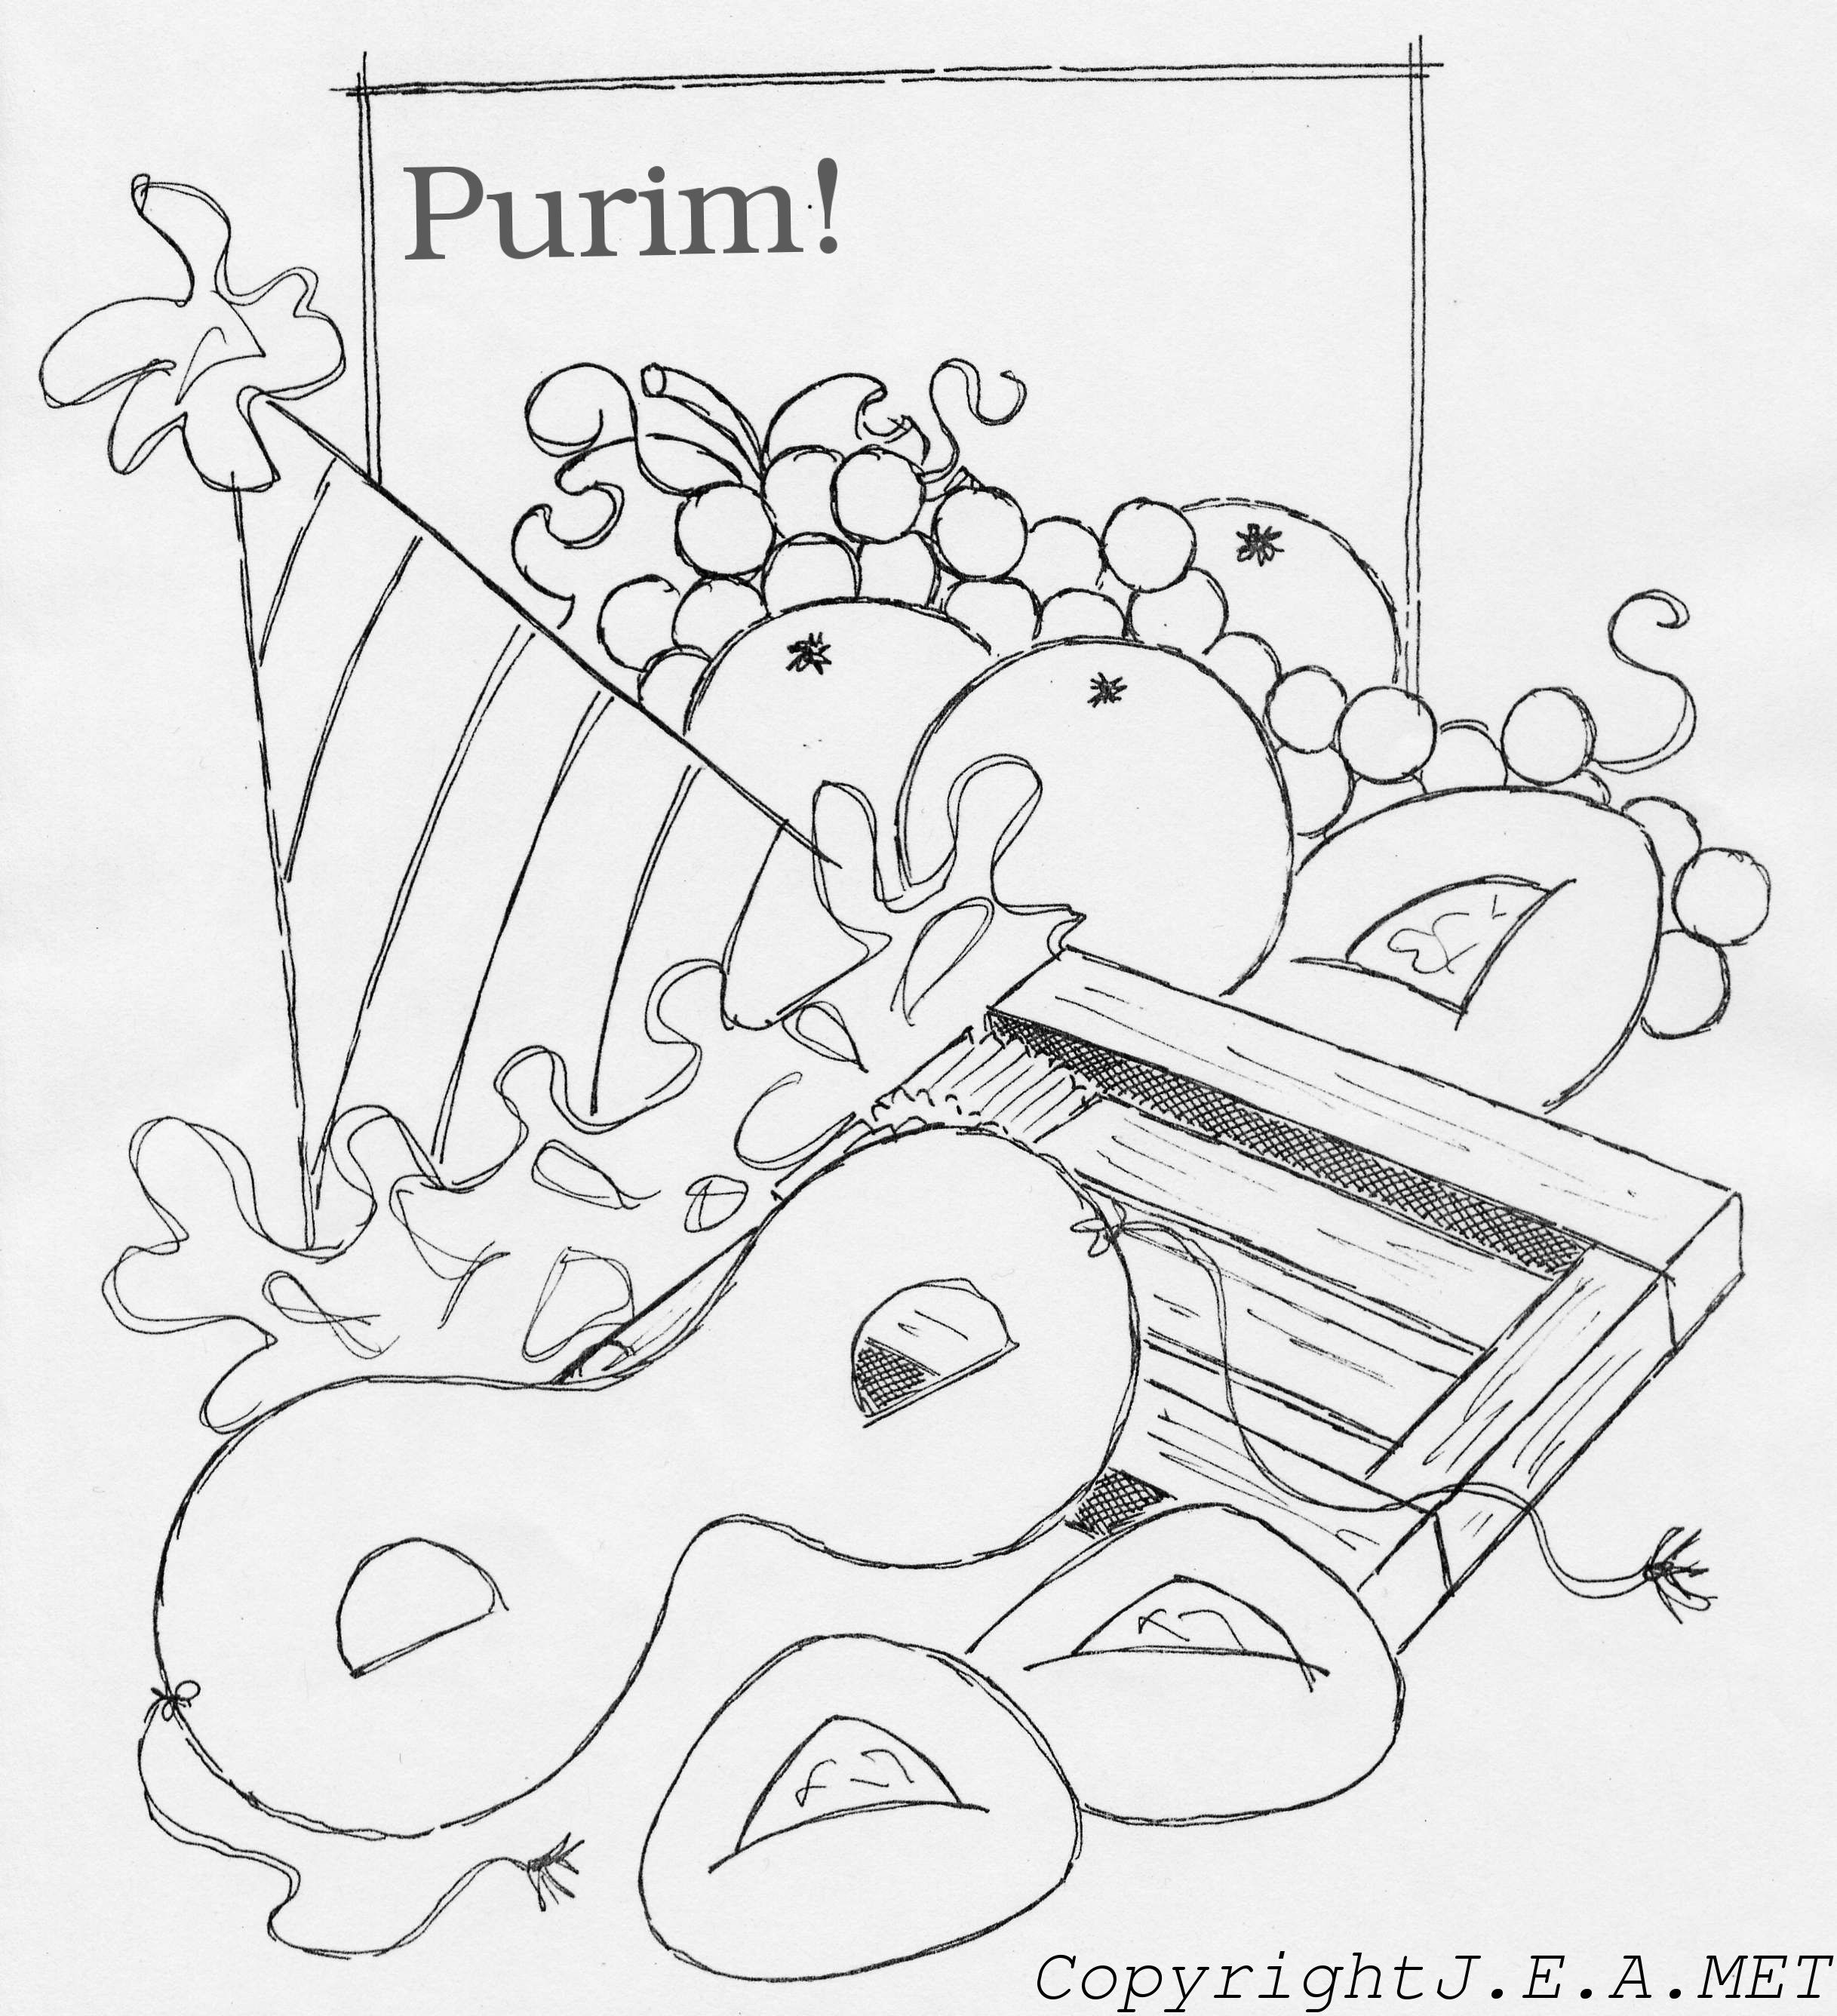 Purim Coloring Pages To Download And Print For Free Coloring